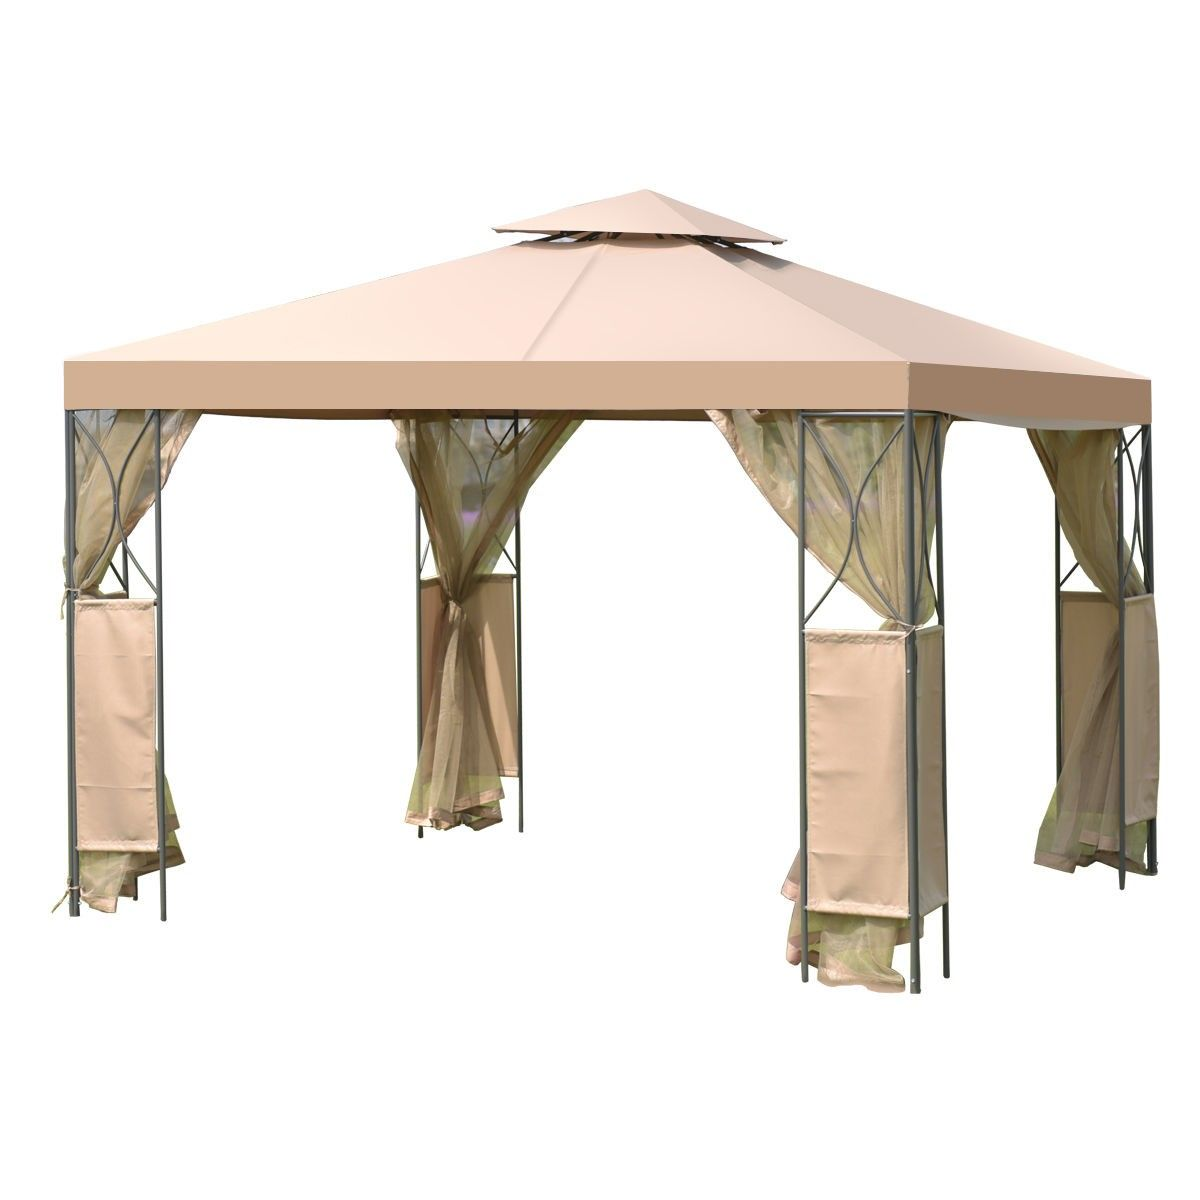 2 Tier 10 X 10 Patio Steel Gazebo Canopy Shelter 144 95 Free Shipping Material Steel And 180g Waterproof Polyester Fabr Gazebo Canopy Steel Gazebo Gazebo